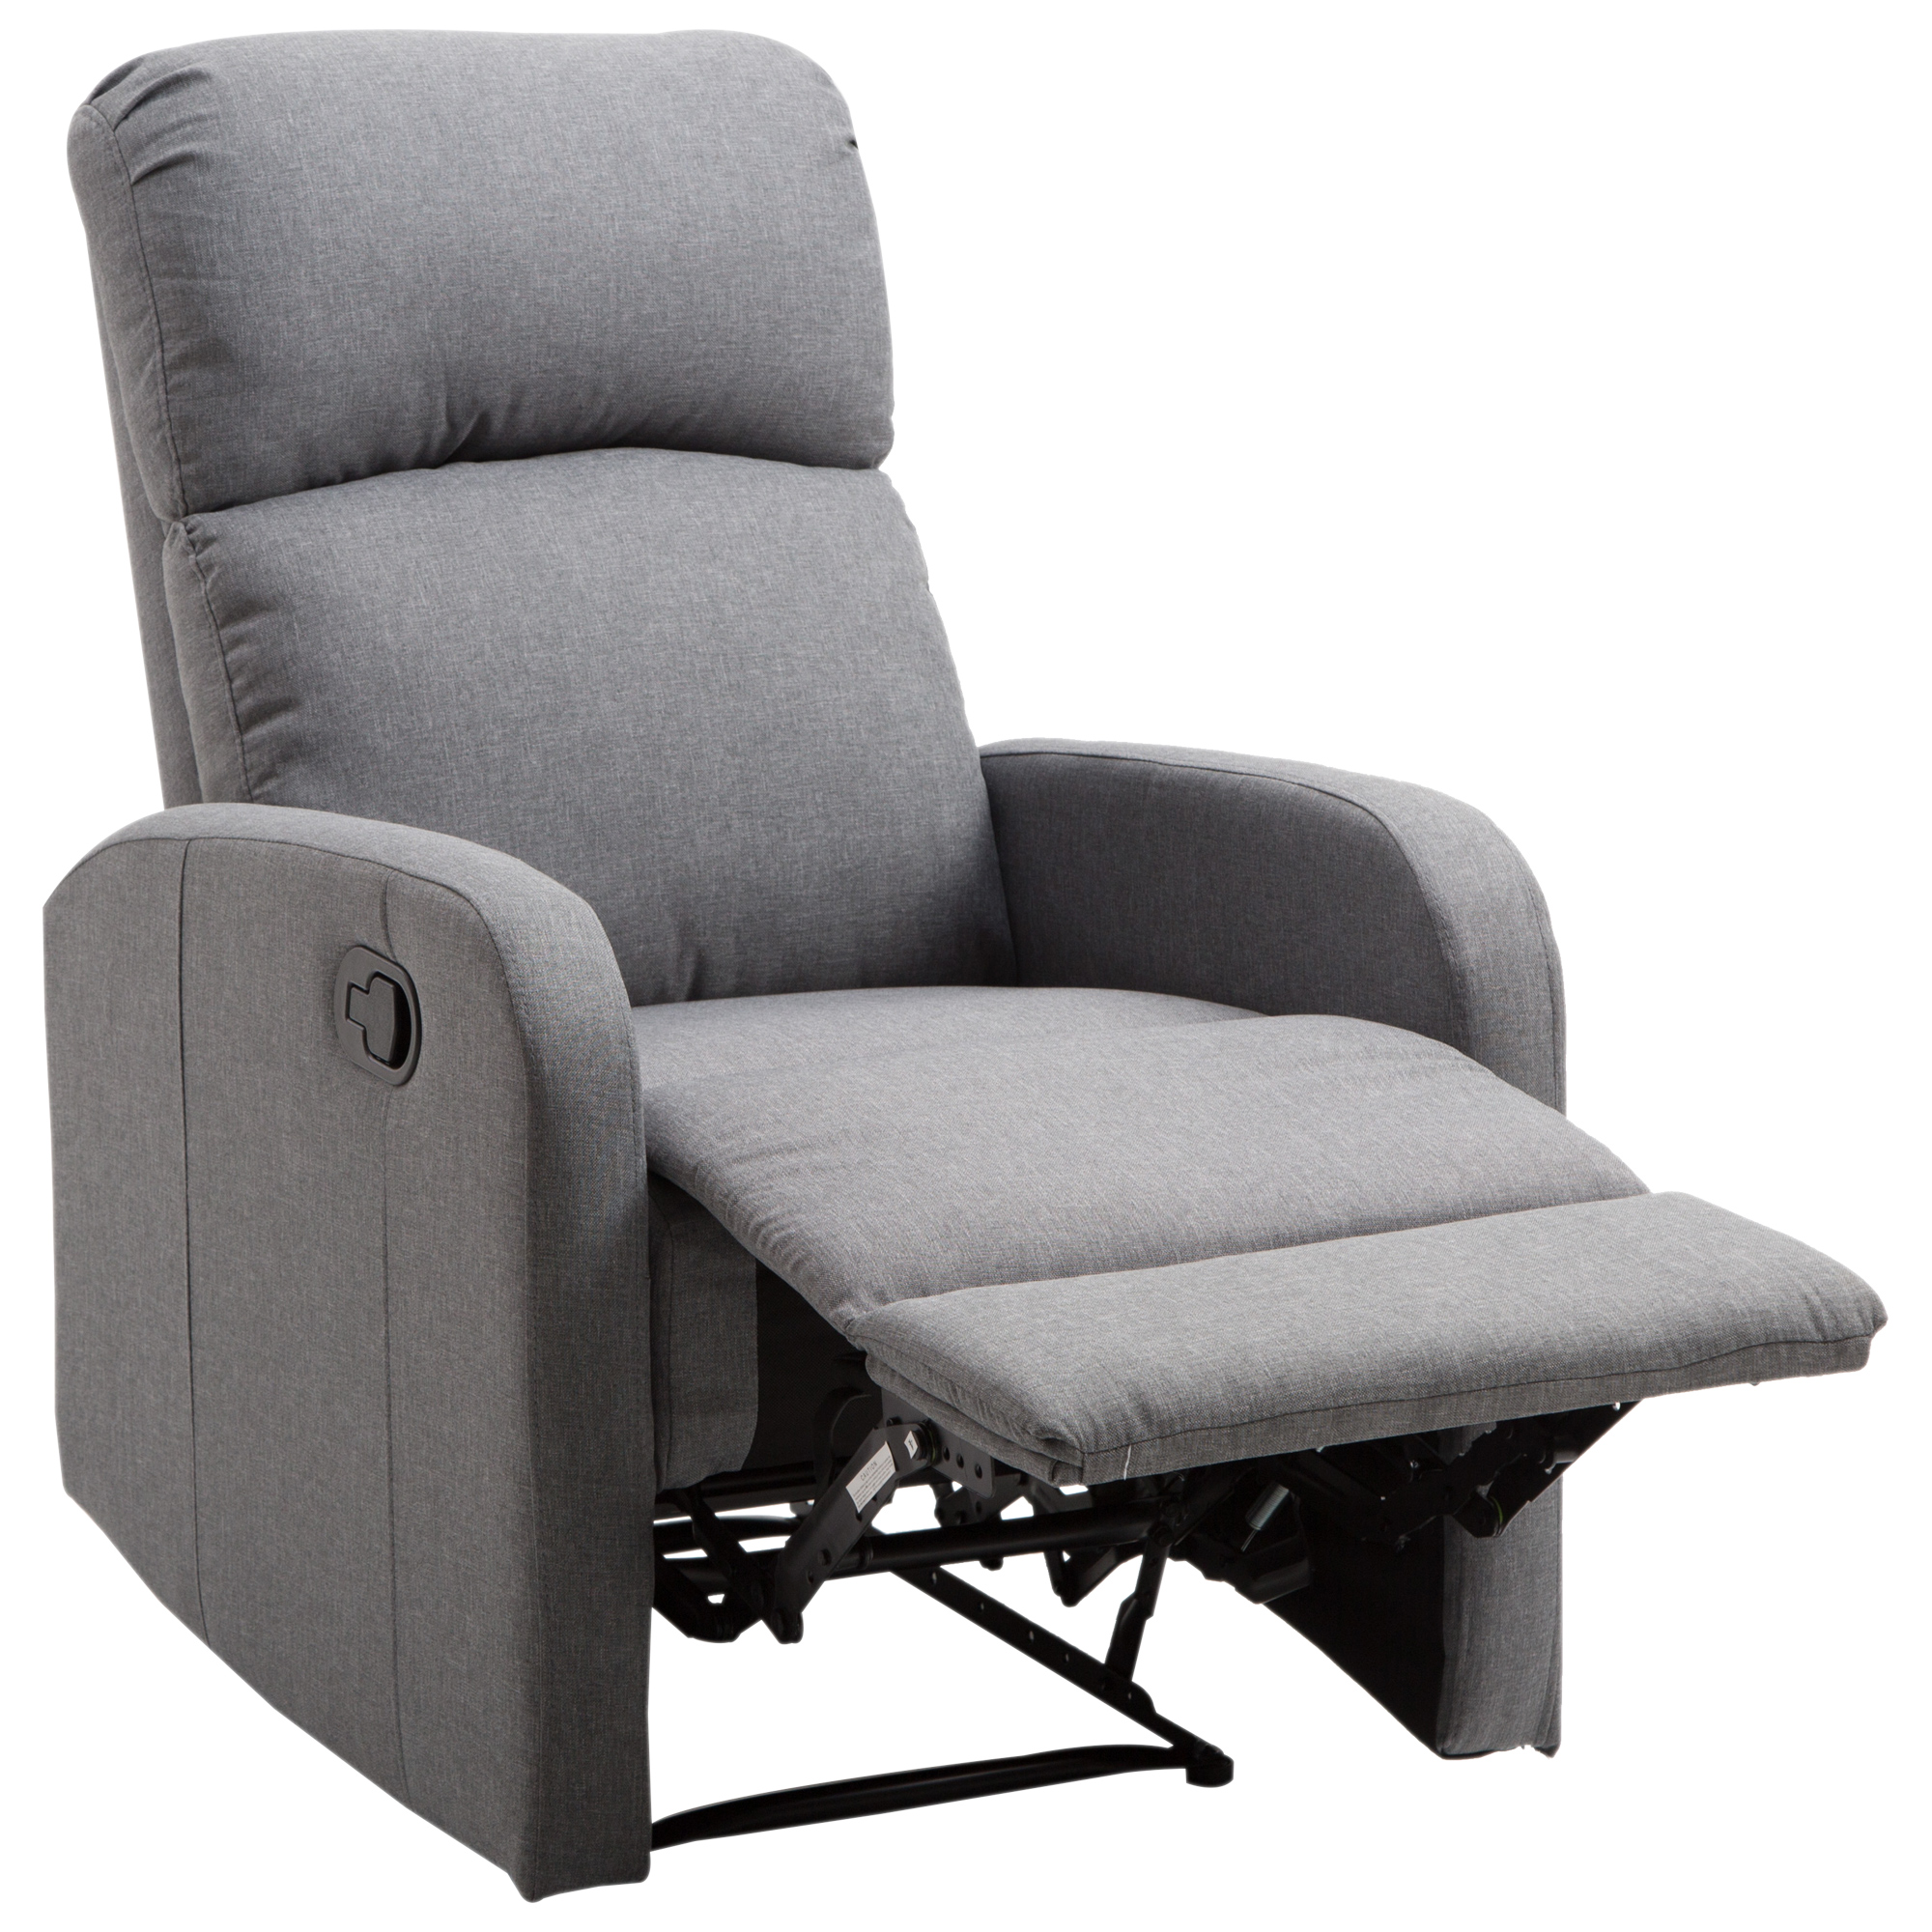 Homcom Linen Fabric Manual Recliner Lounger Chair With Footrest